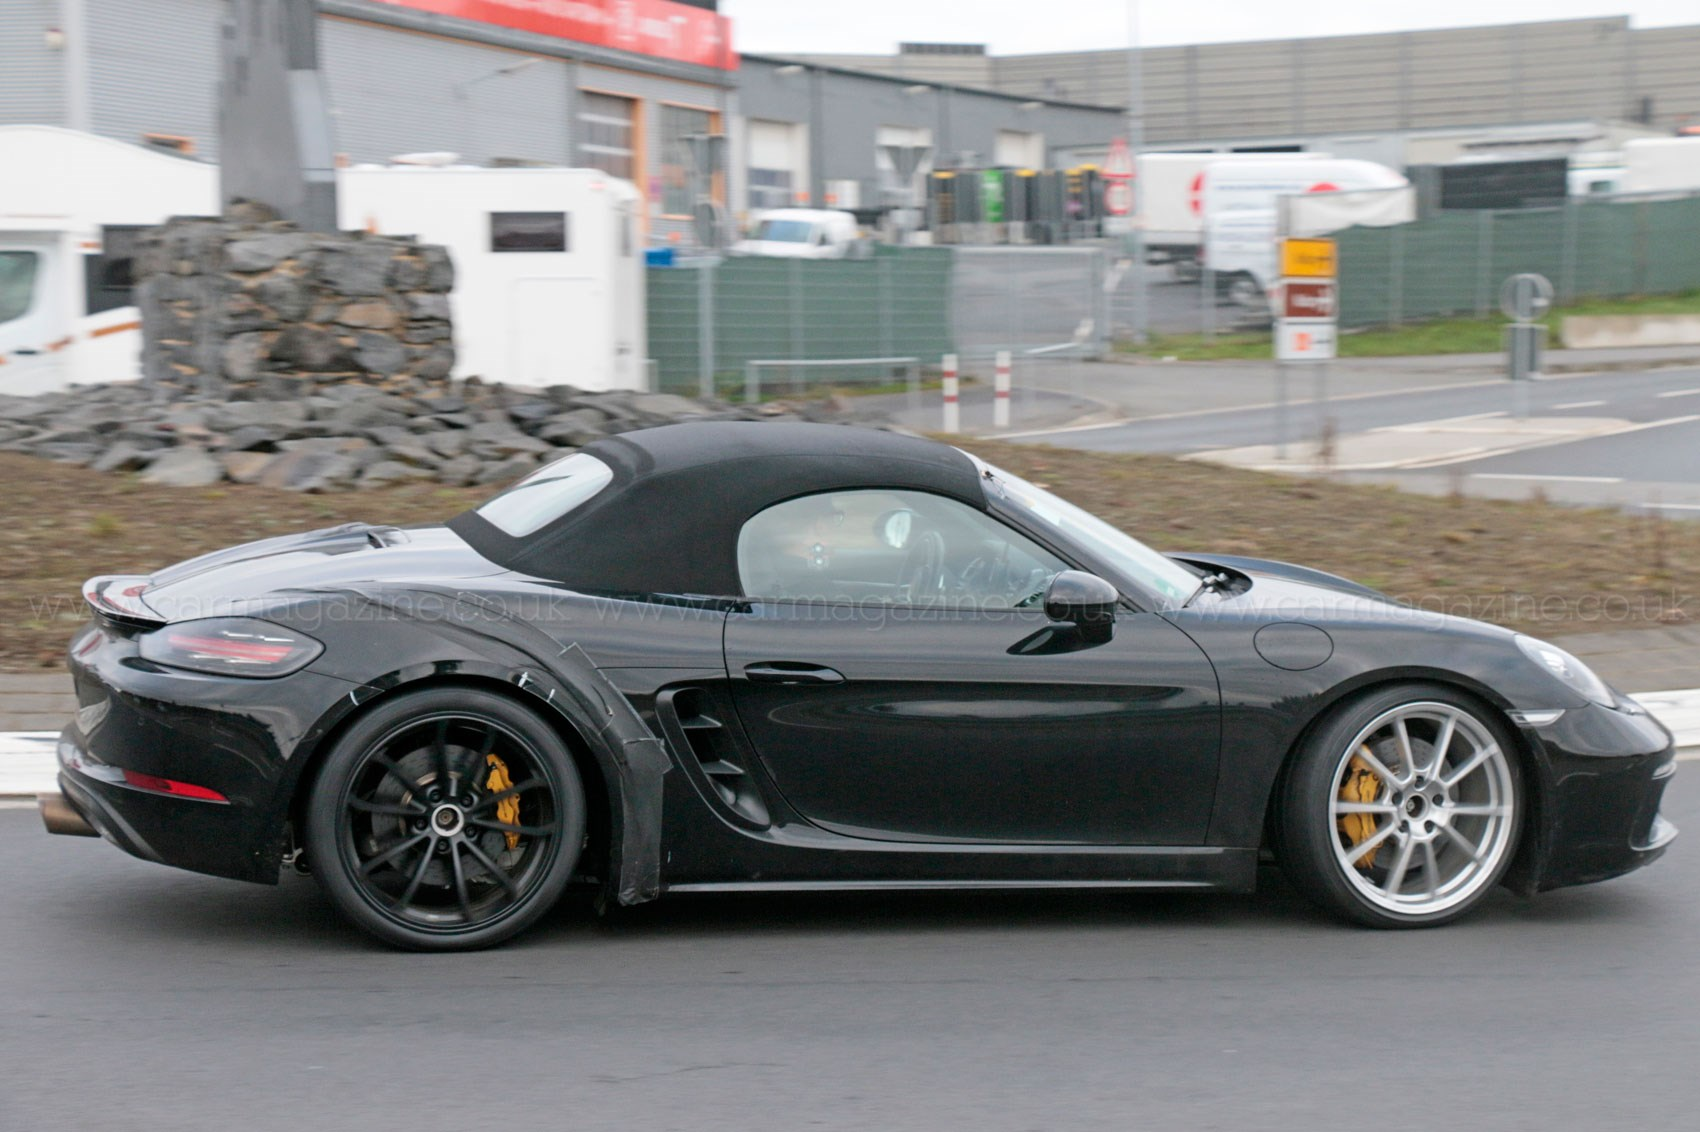 Porsche dials in new 718 Boxster GTS by CAR Magazine